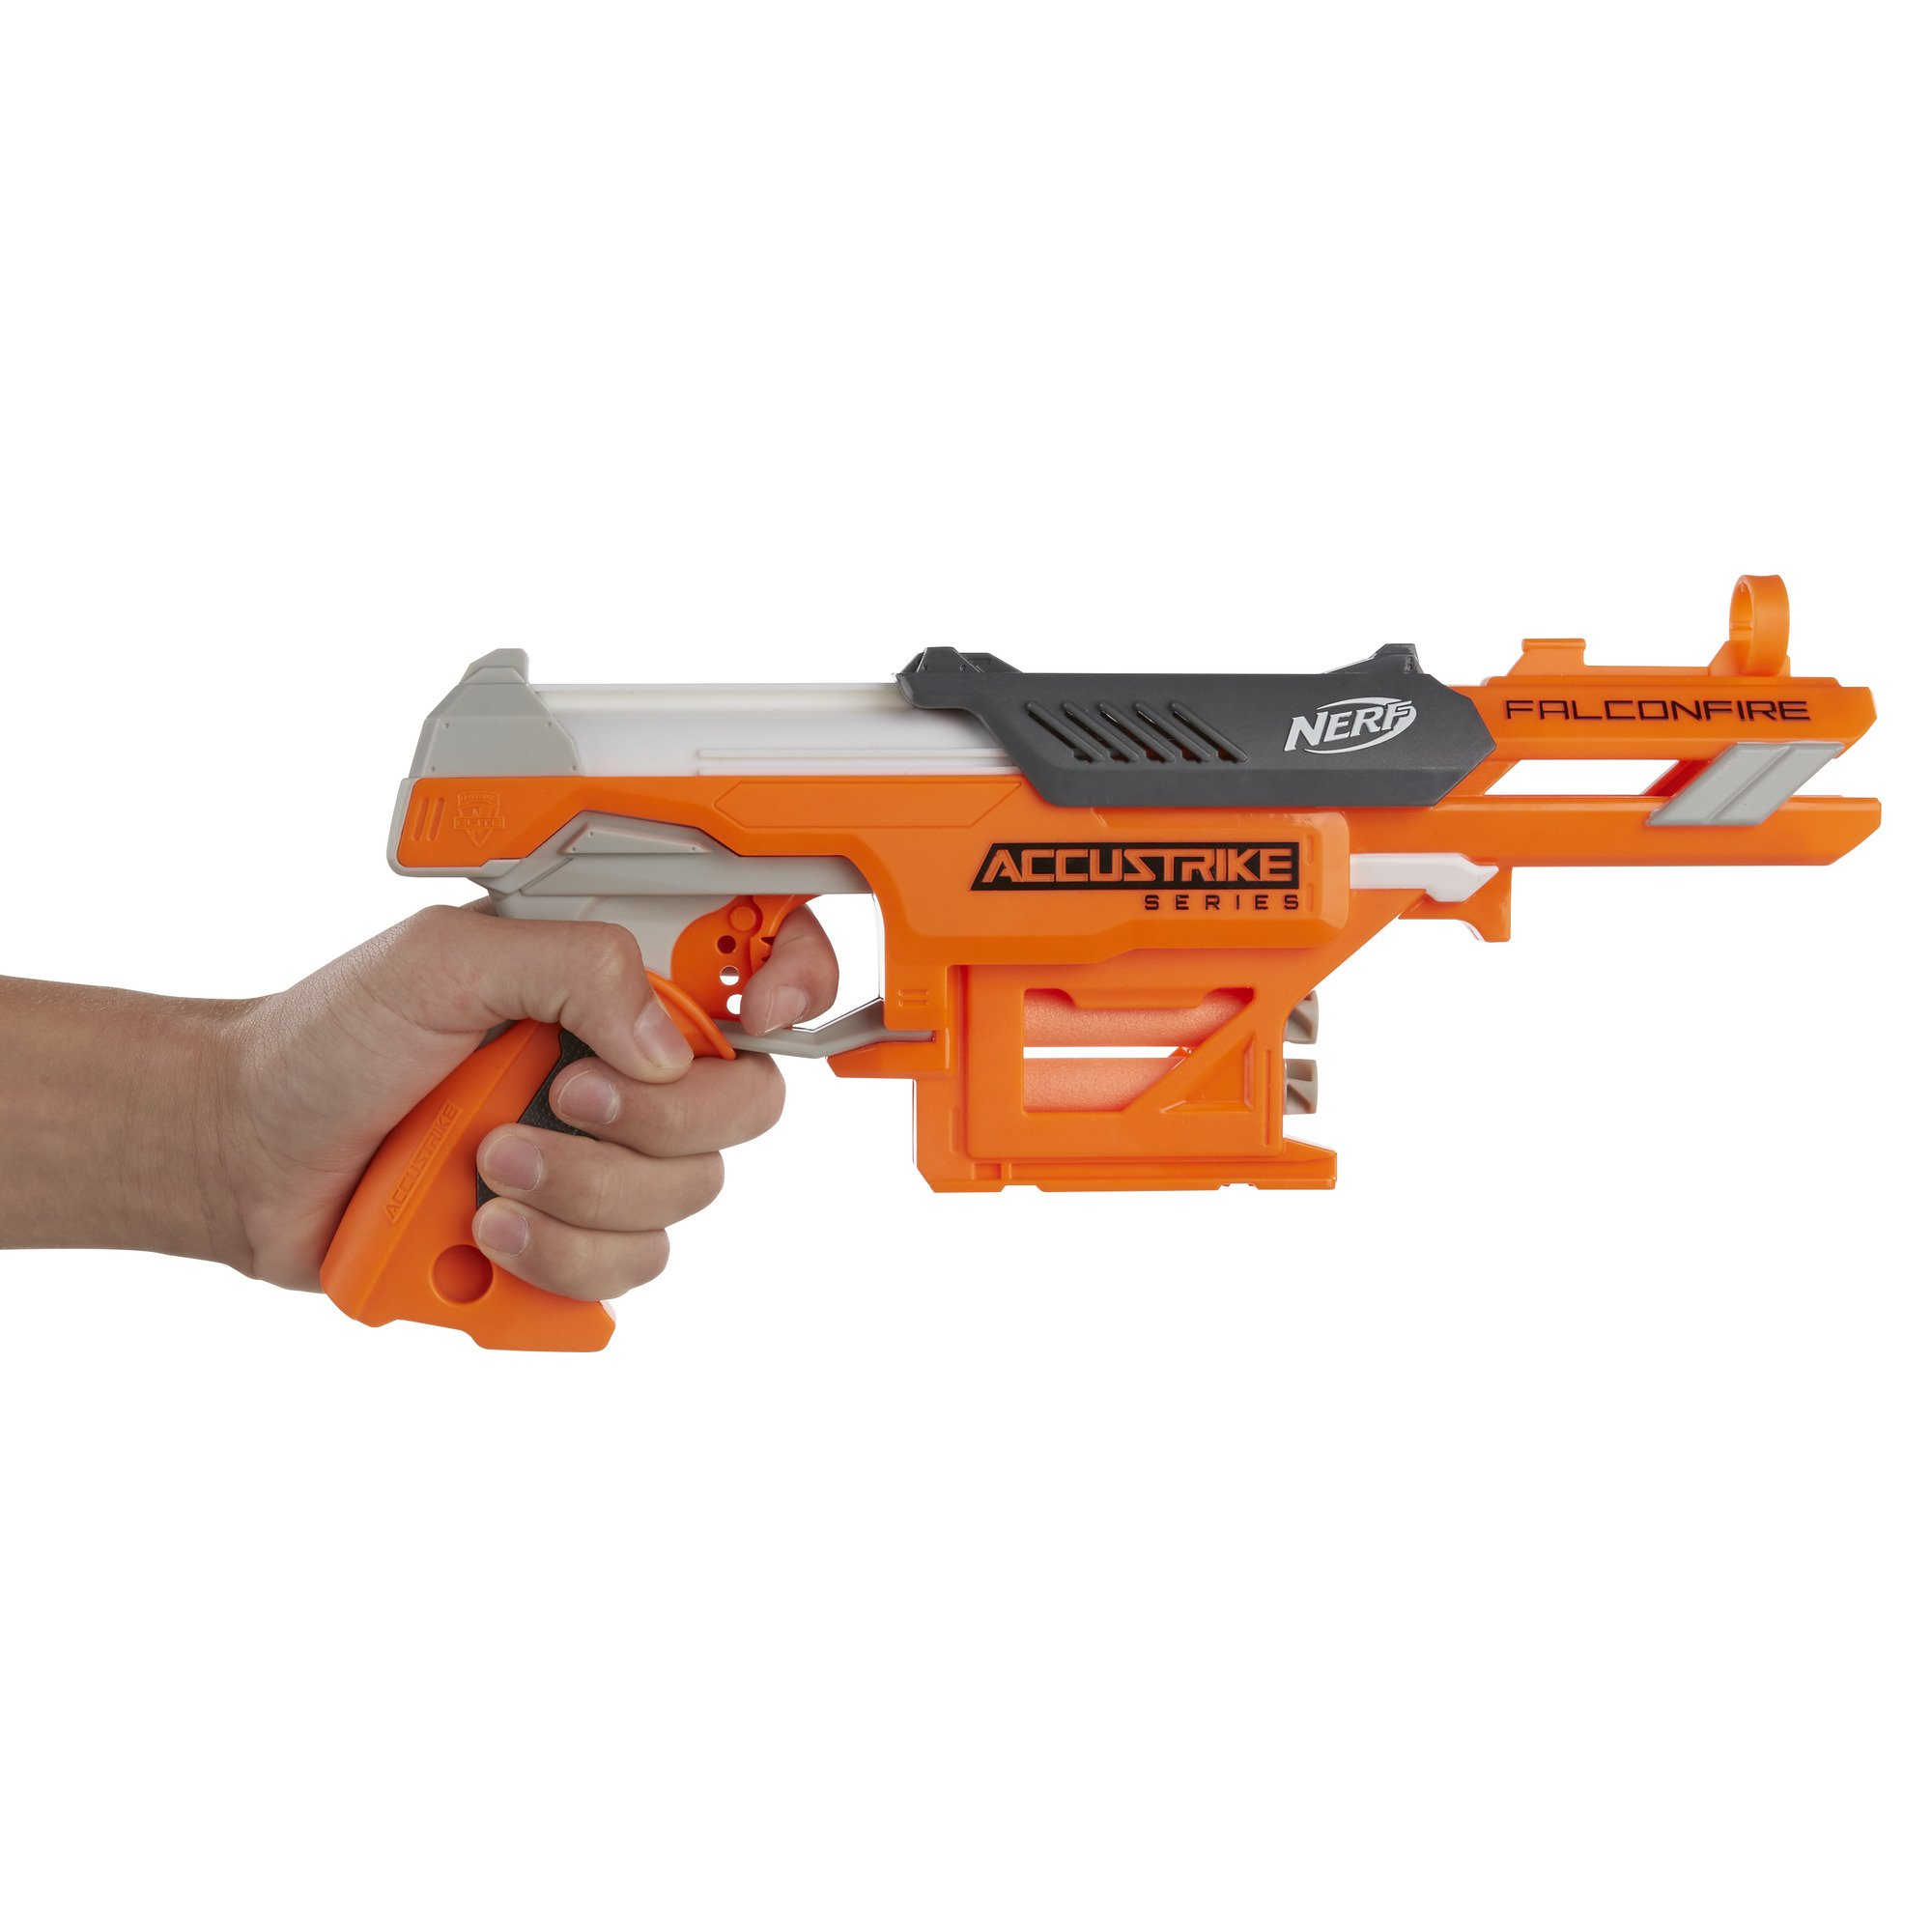 Nerf N-Strike Elite AccuStrike Series FalconFire by Nerf (Image #14)